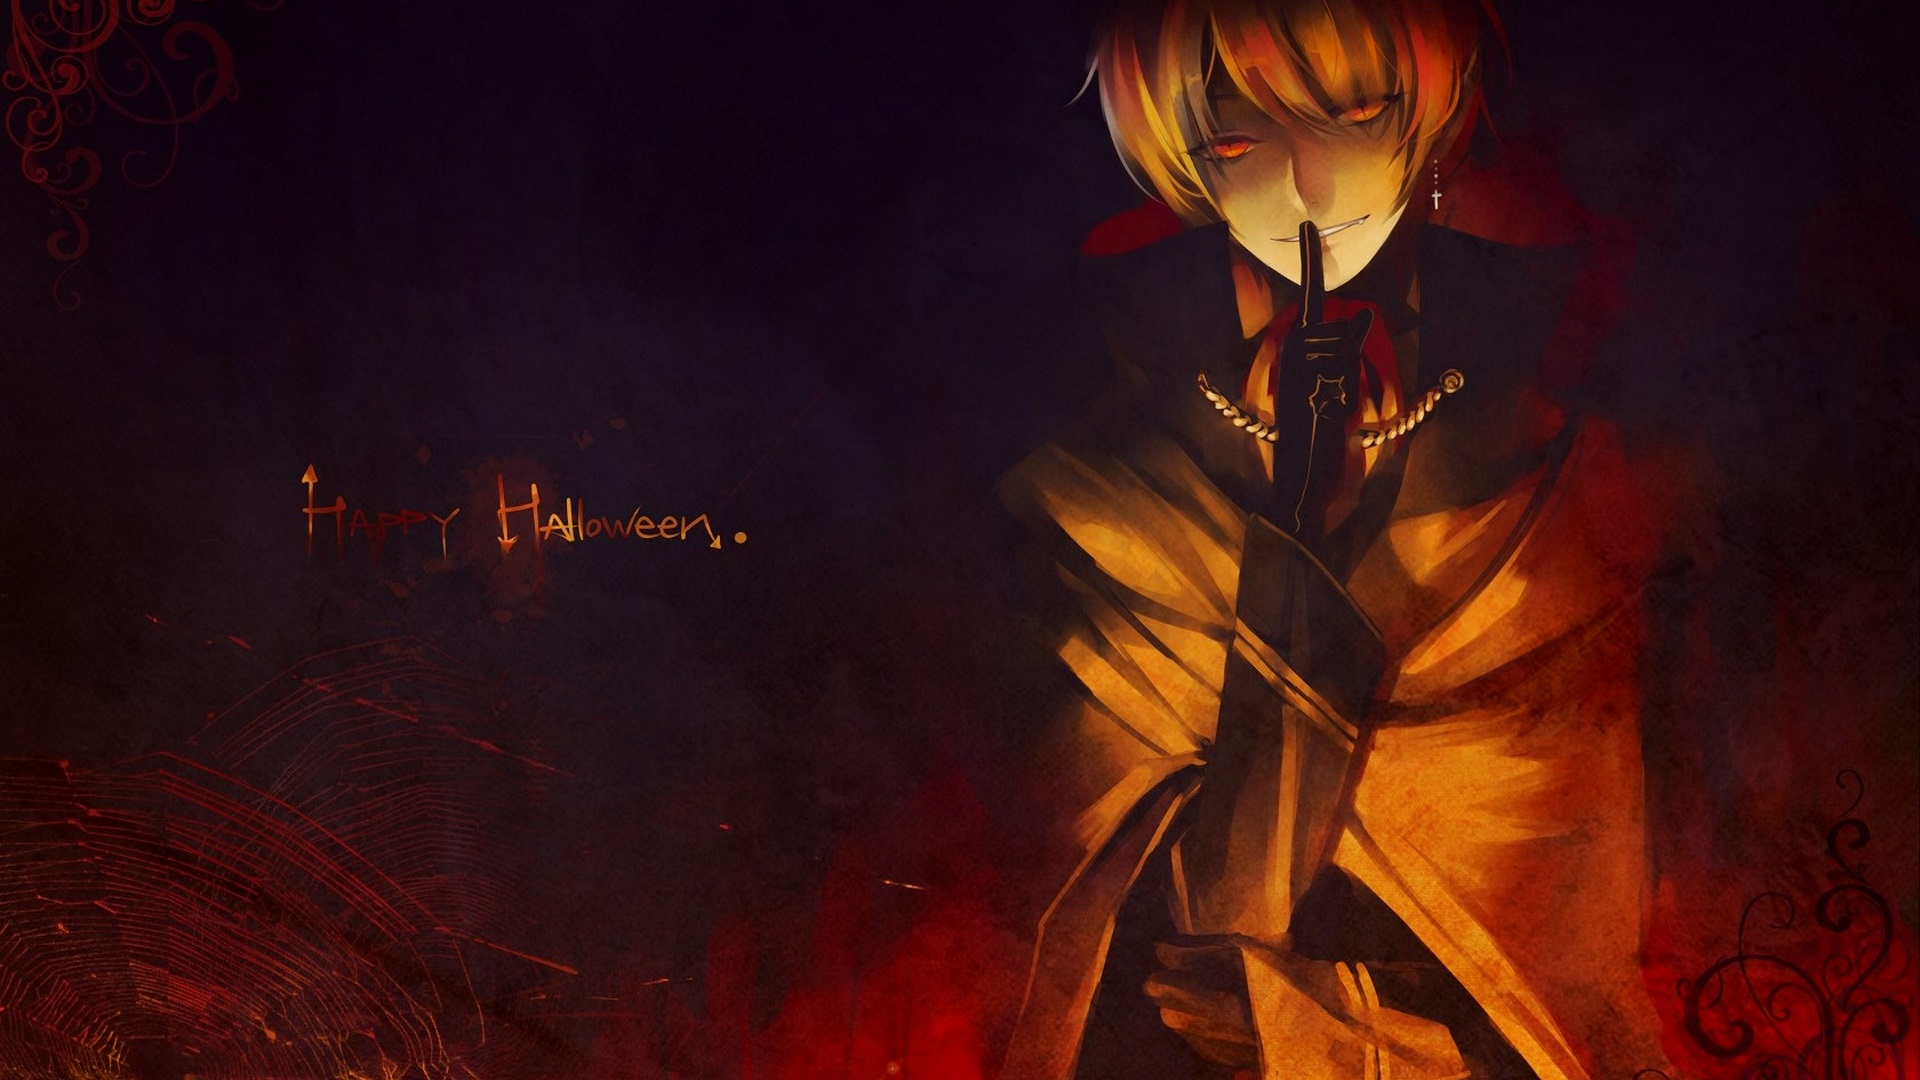 Halloween Hd Wallpaper Background Image 1920x1080 Id 975183 Wallpaper Abyss